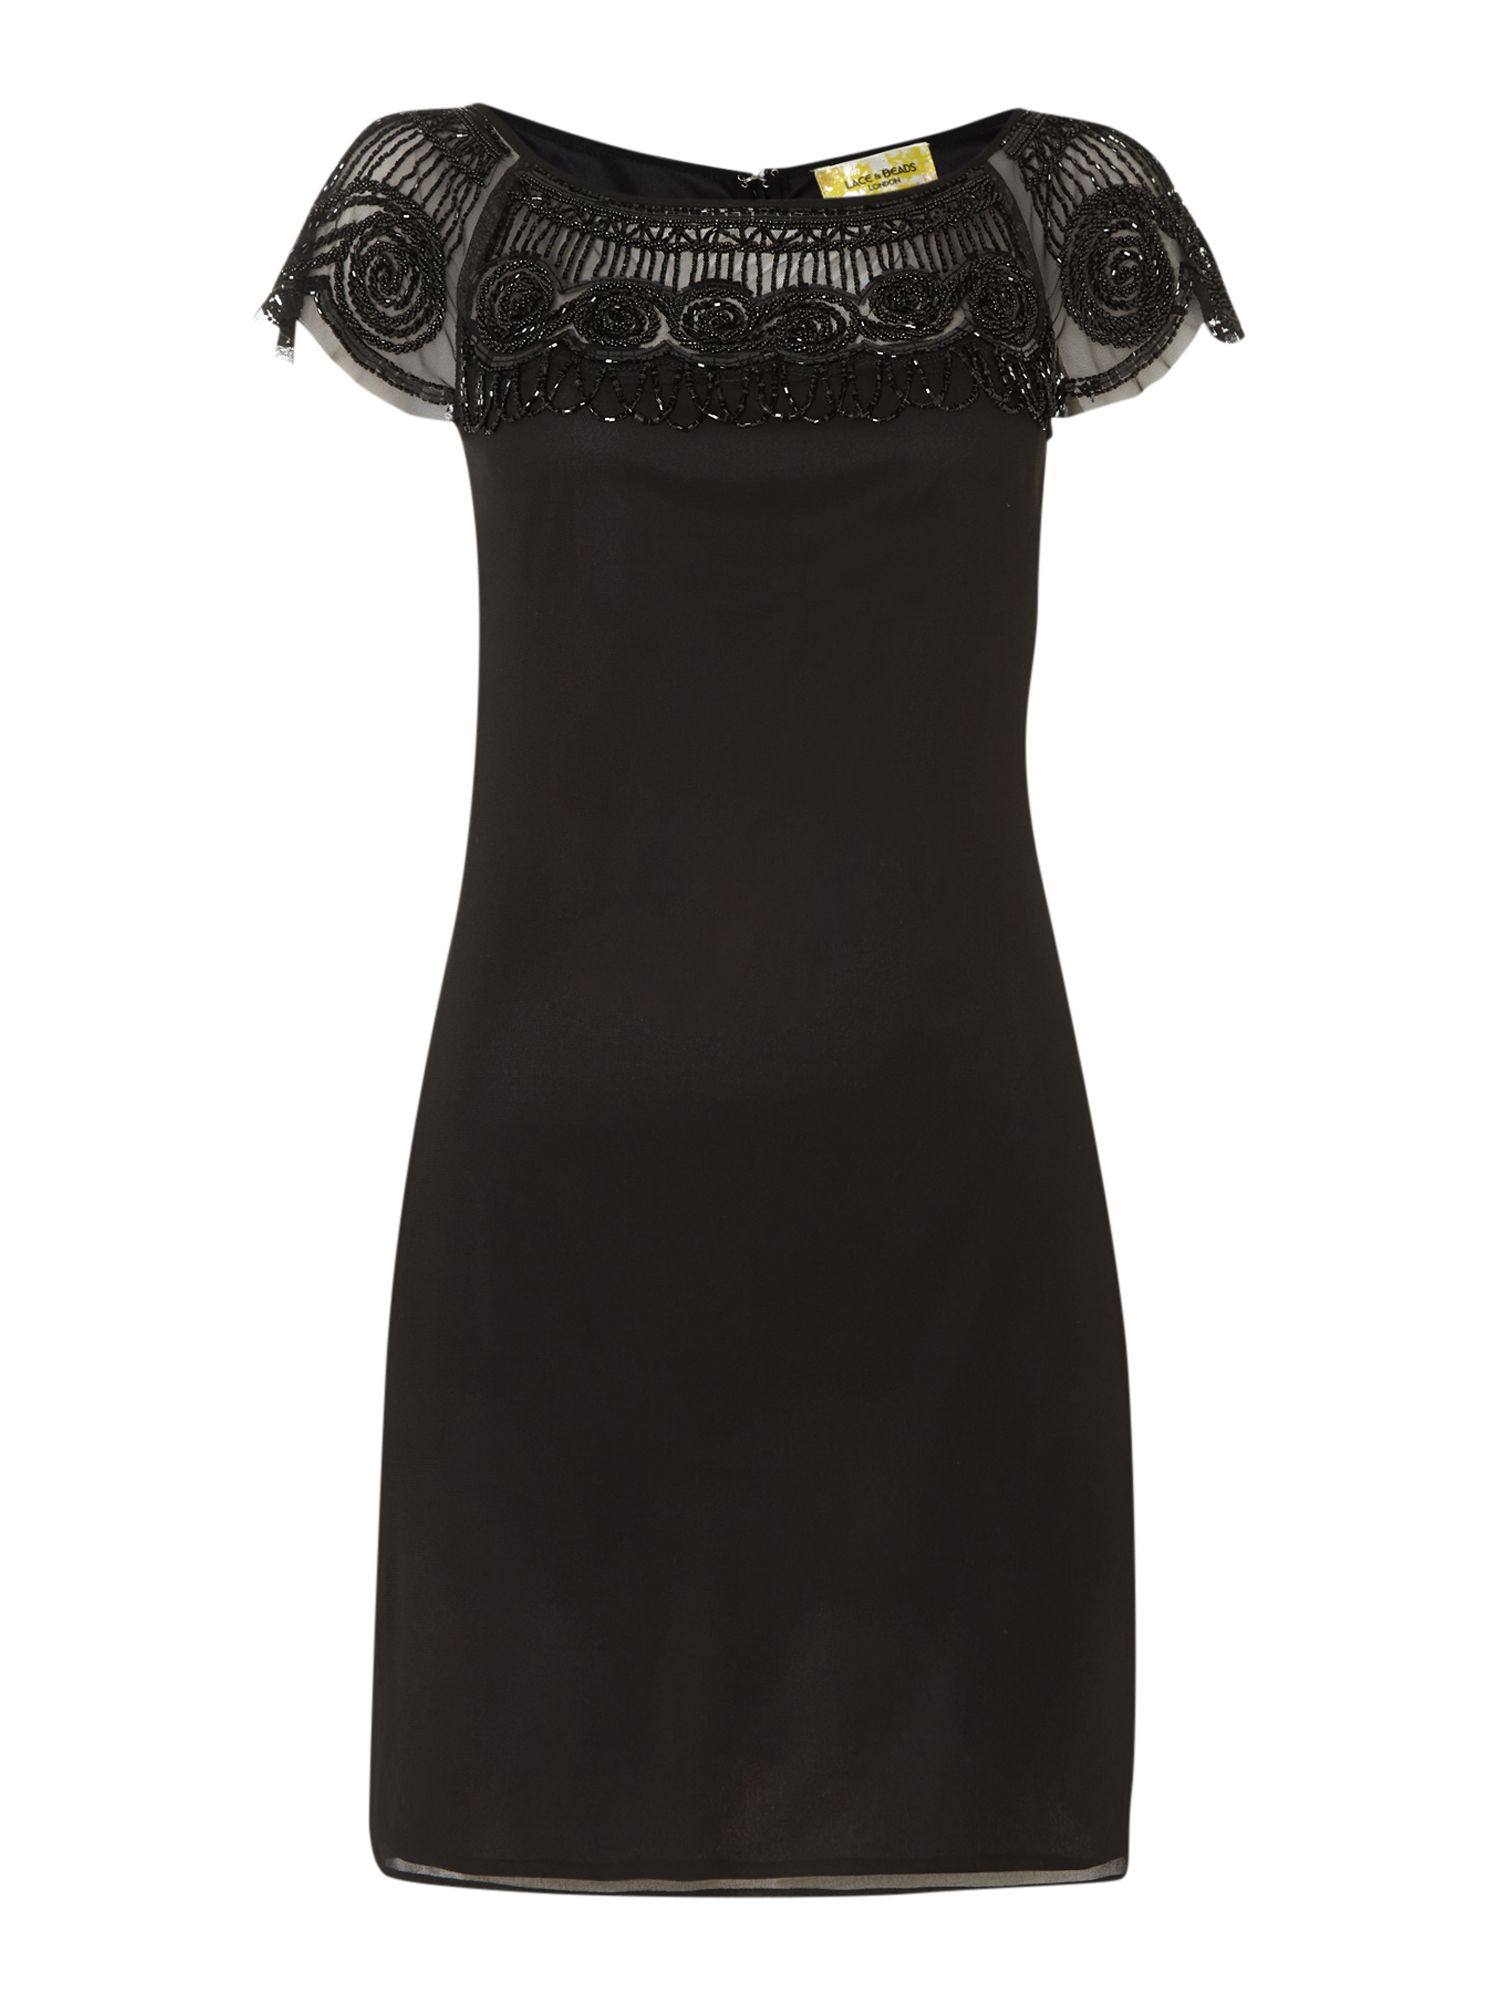 Lace and Beads Lace and Beads Cap sleeve embellished shoulder shift dress, Black